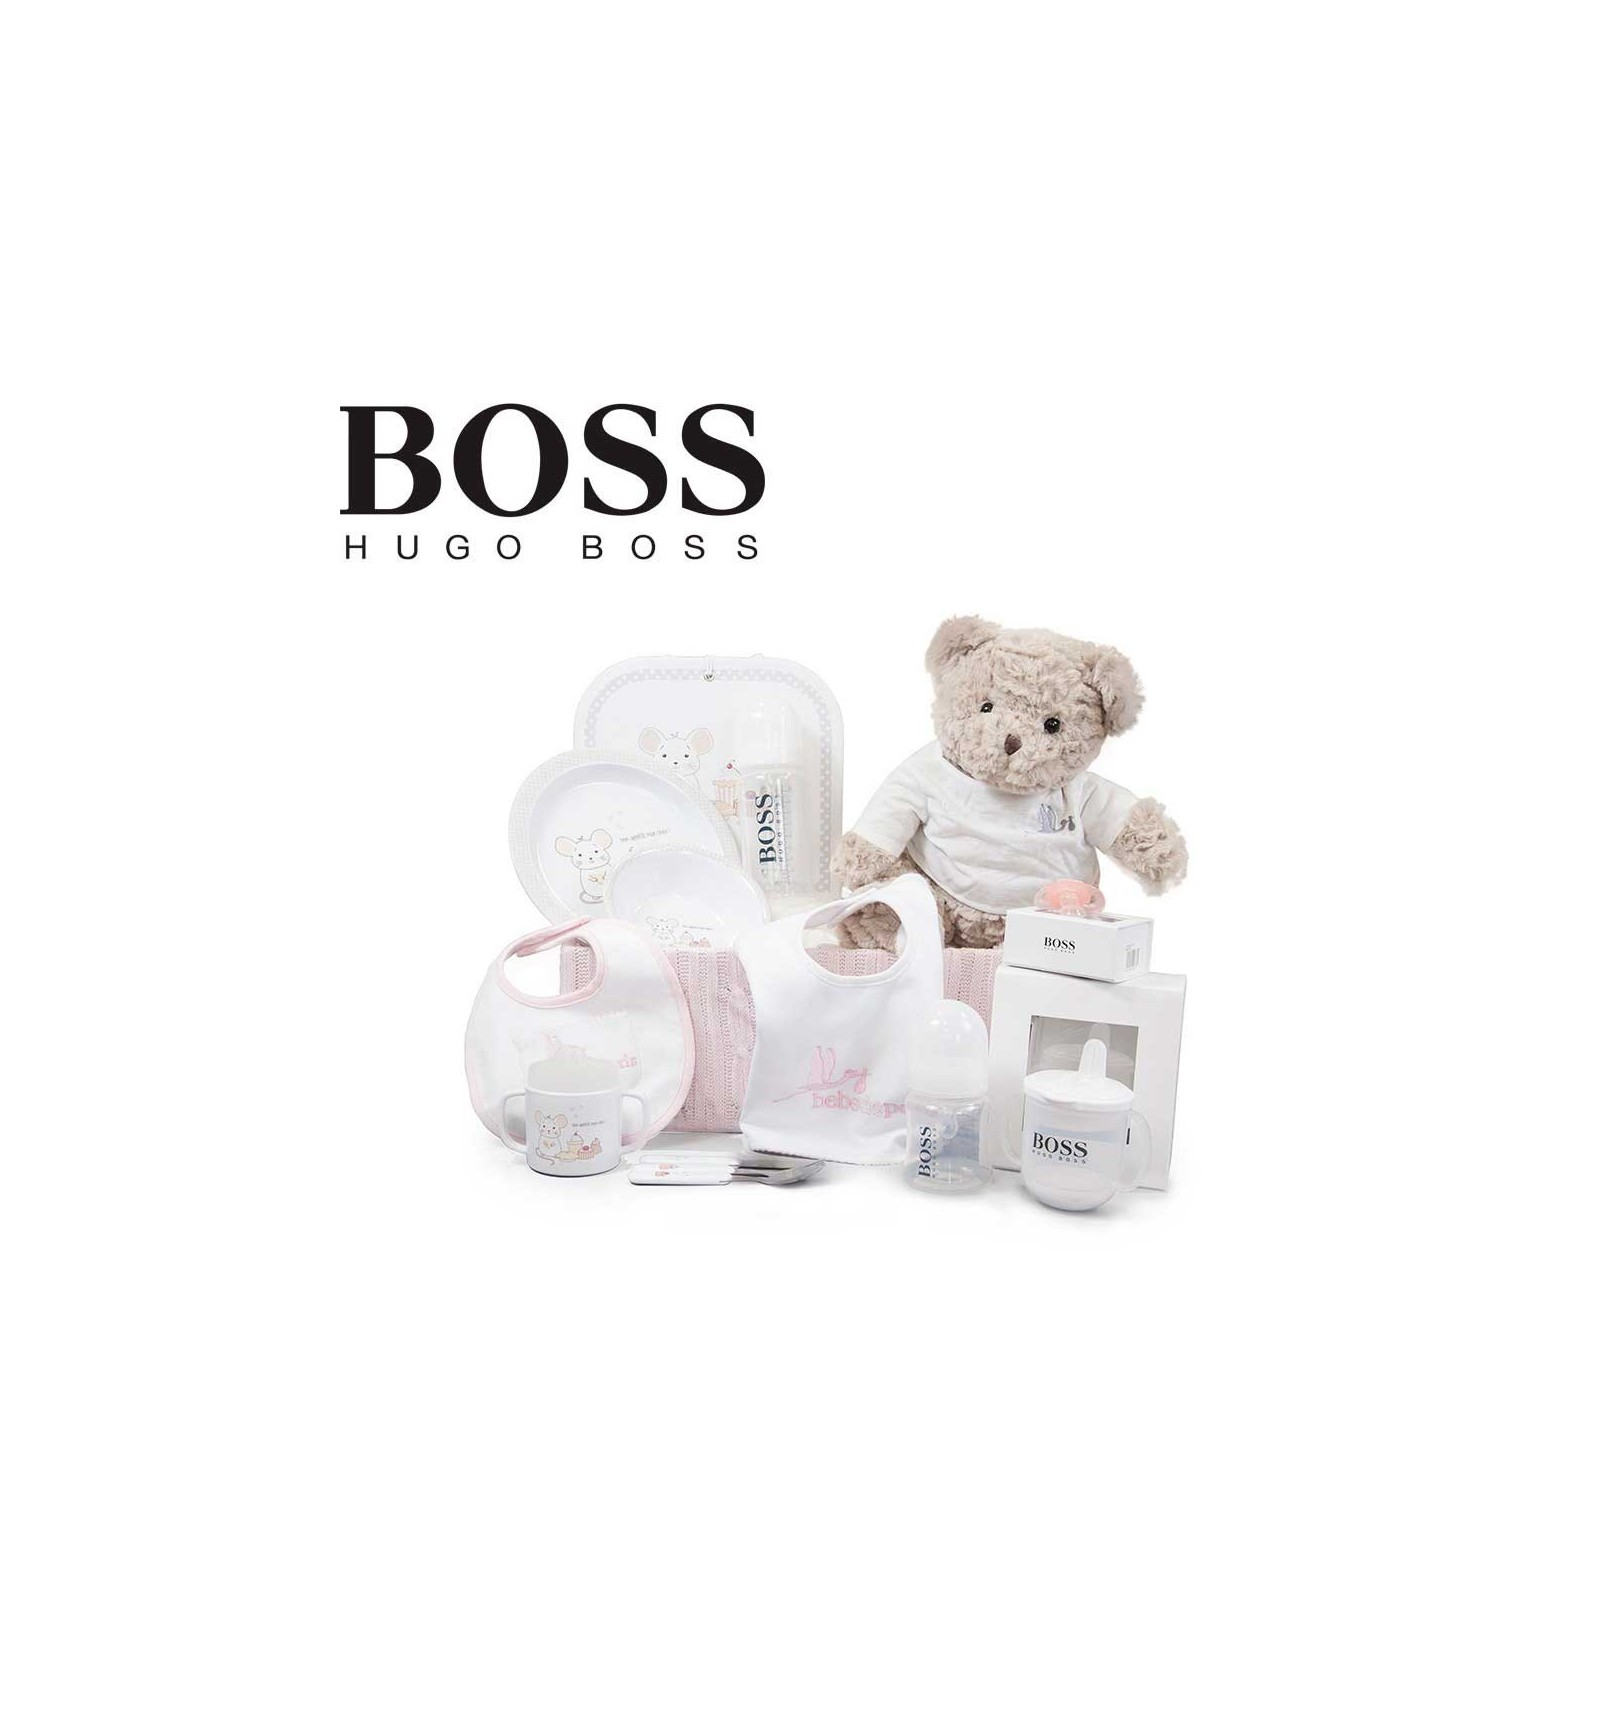 corbeille b b hugo boss fille gourmet bebe de paris. Black Bedroom Furniture Sets. Home Design Ideas